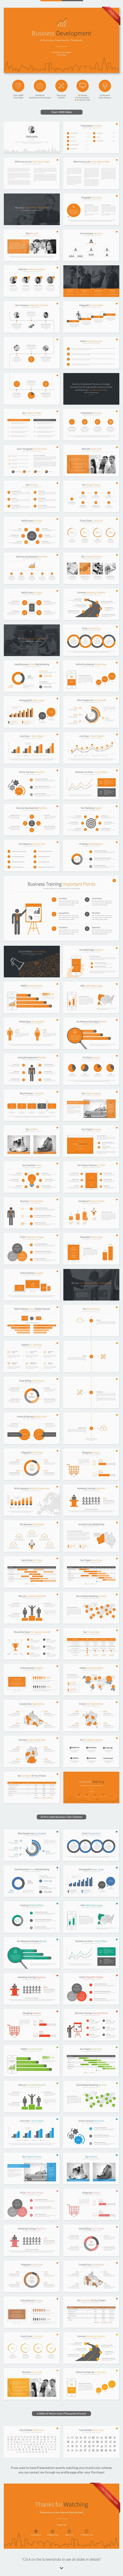 Professional design of Business Development PowerPoint Presentation, you can download the source Animated PowerPoint files from this link: http://graphicriver.net/item/business-development-powerpoint-template/10420710?ref=JafarDesigns